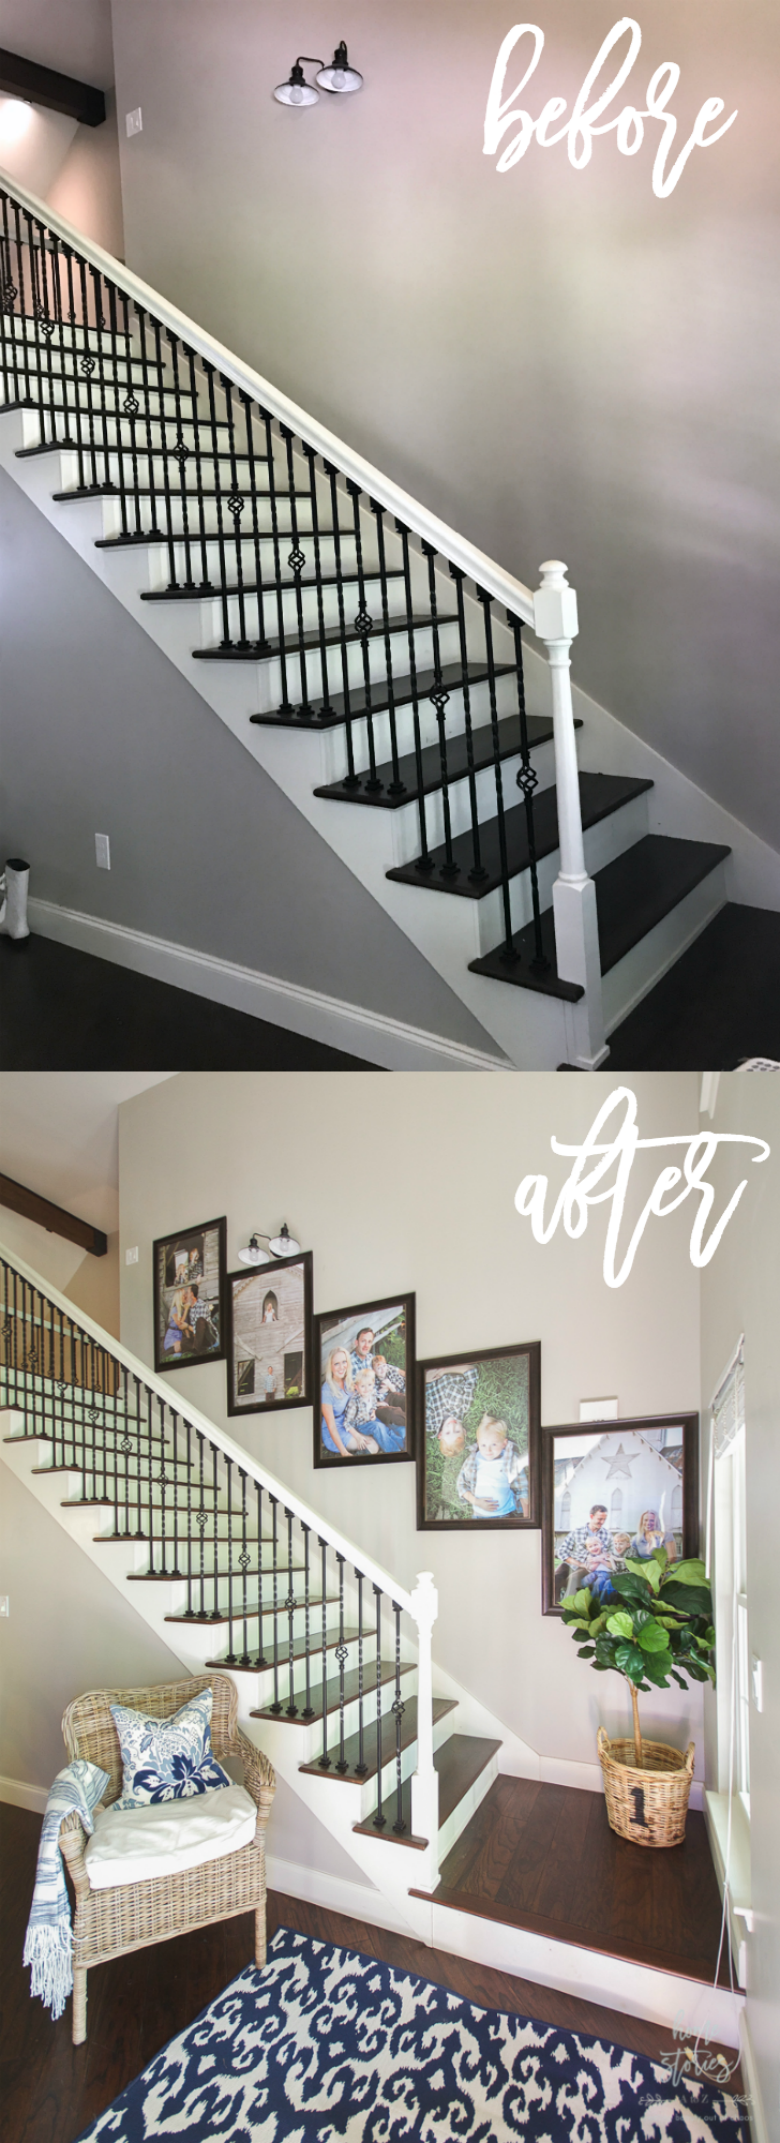 How to create a stairway picture wall with better homes gardens how to create a stairway picture wall with better homes gardens poster frames jeuxipadfo Choice Image